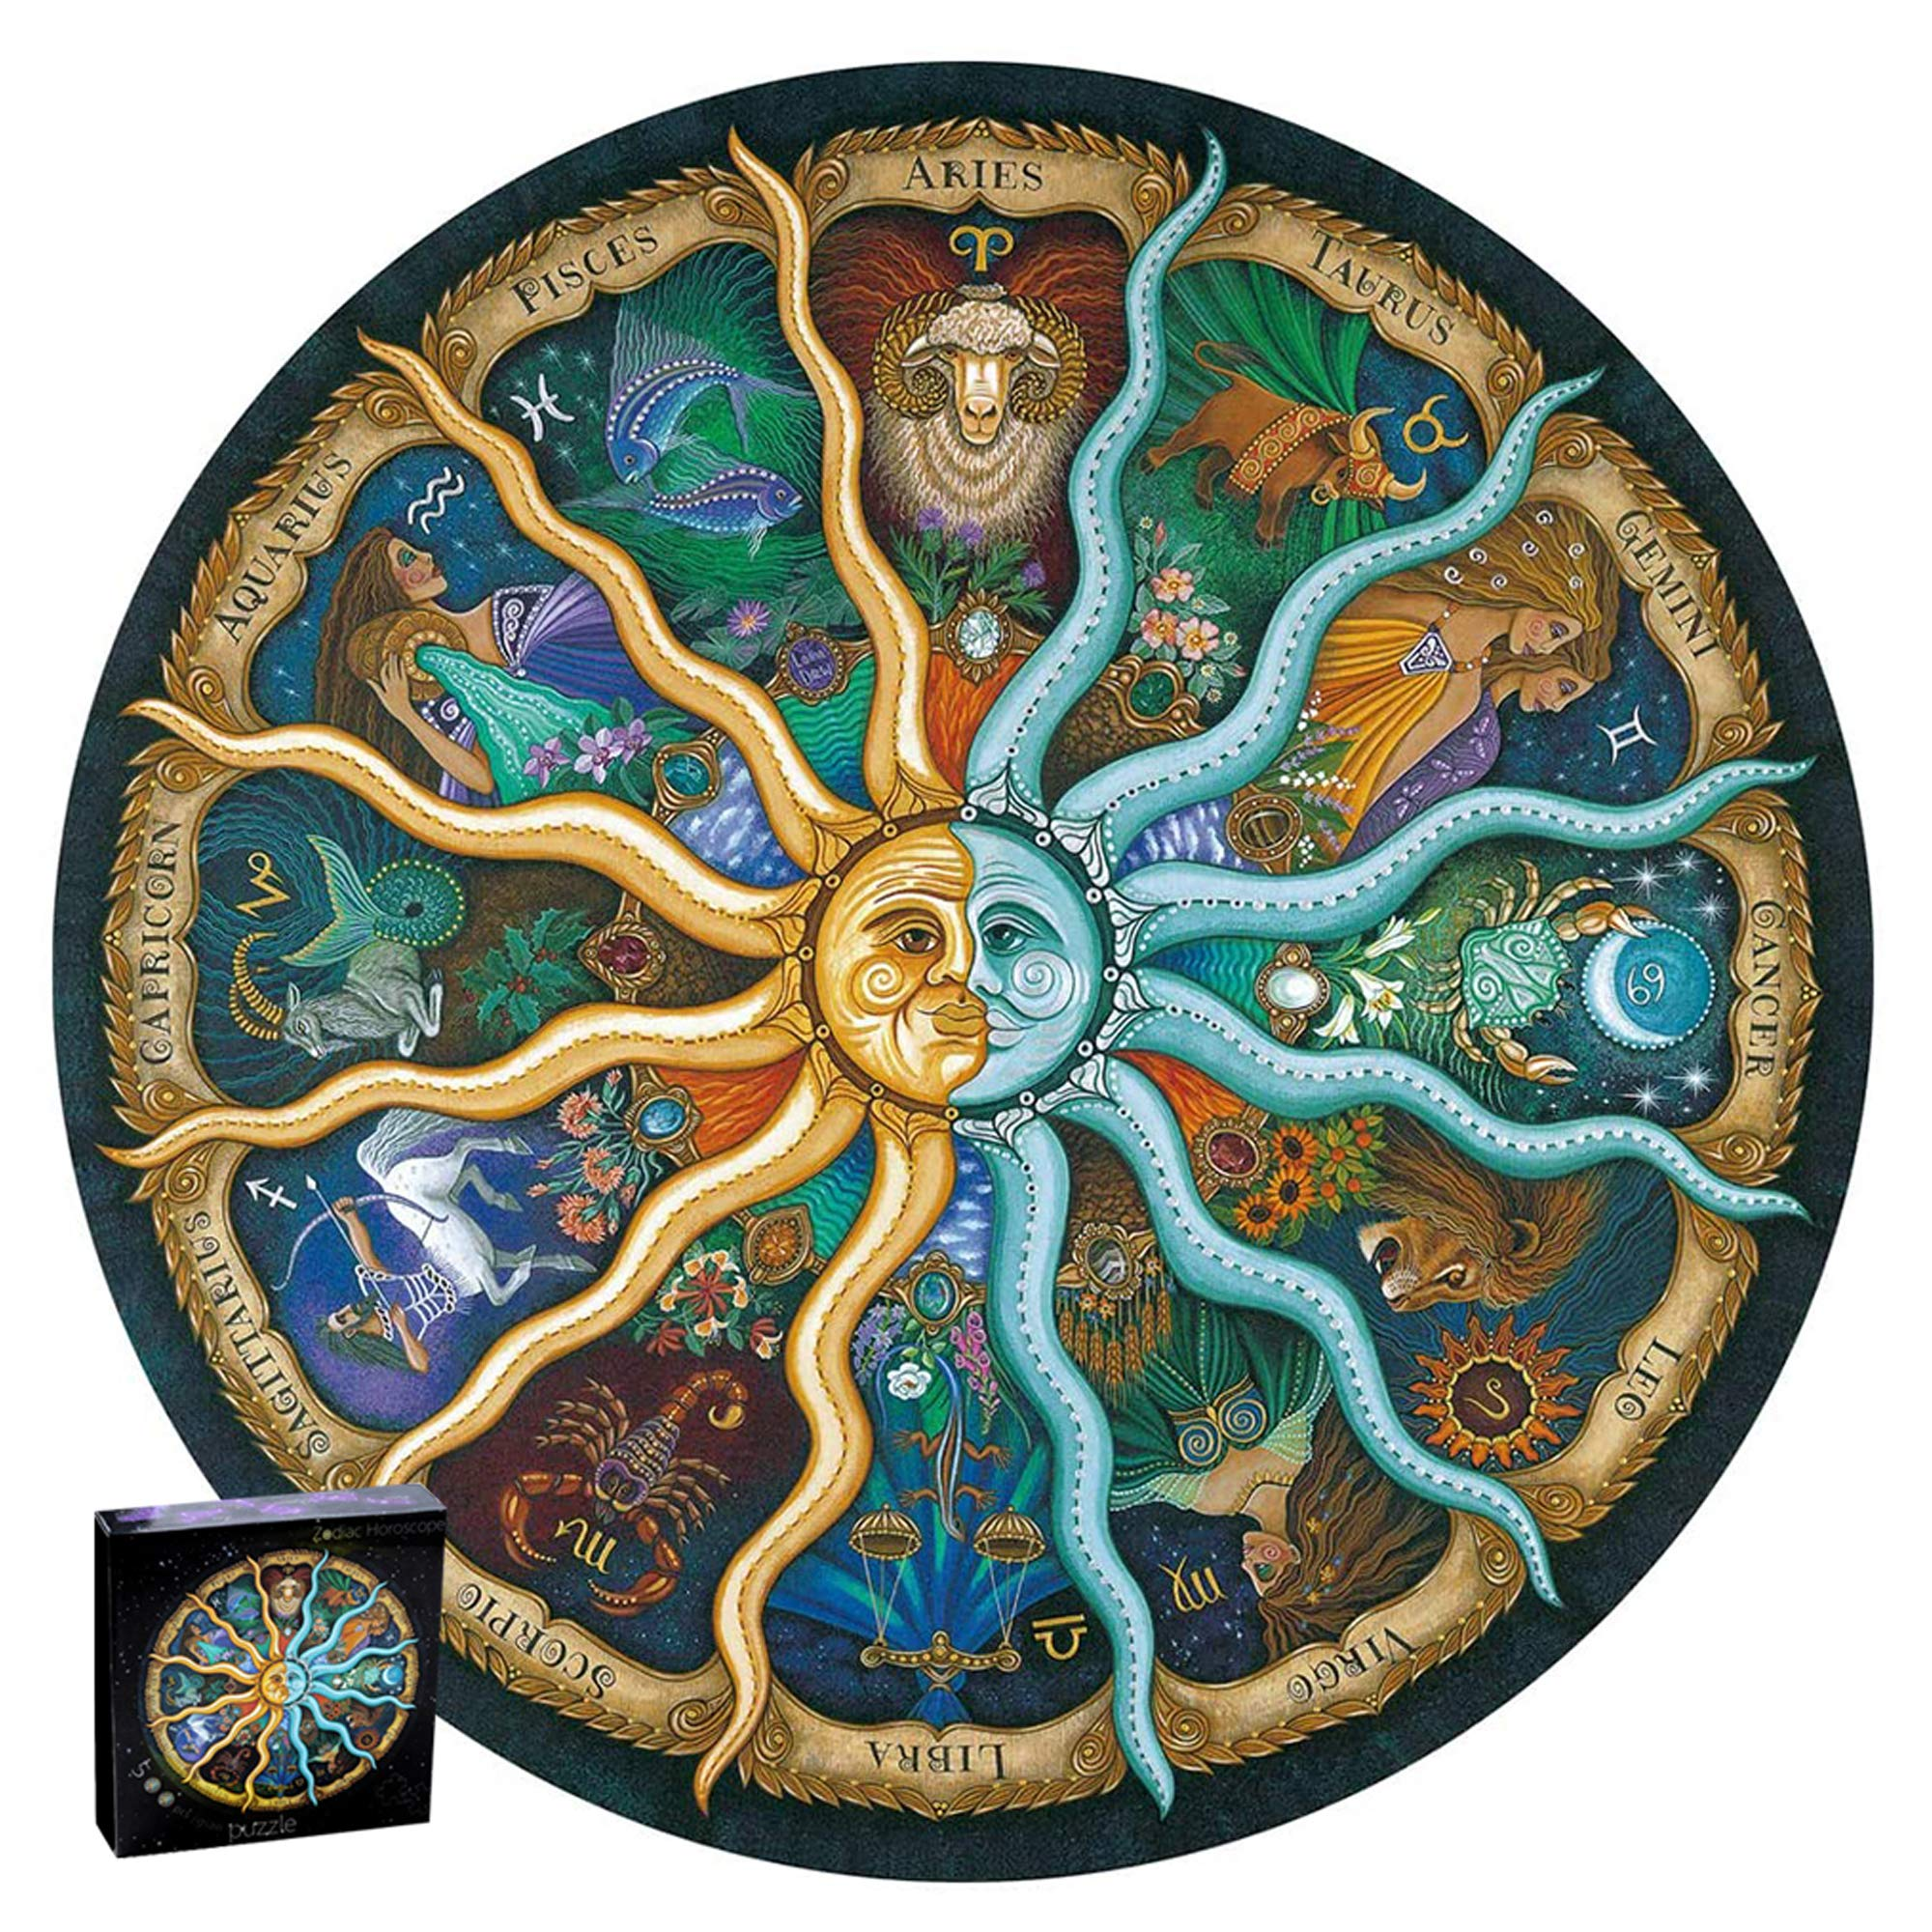 500 Pieces Puzzles, Round Zodiac Horoscope Jigsaw Puzzle, Challenge Cardboard Puzzle for Kids Adults